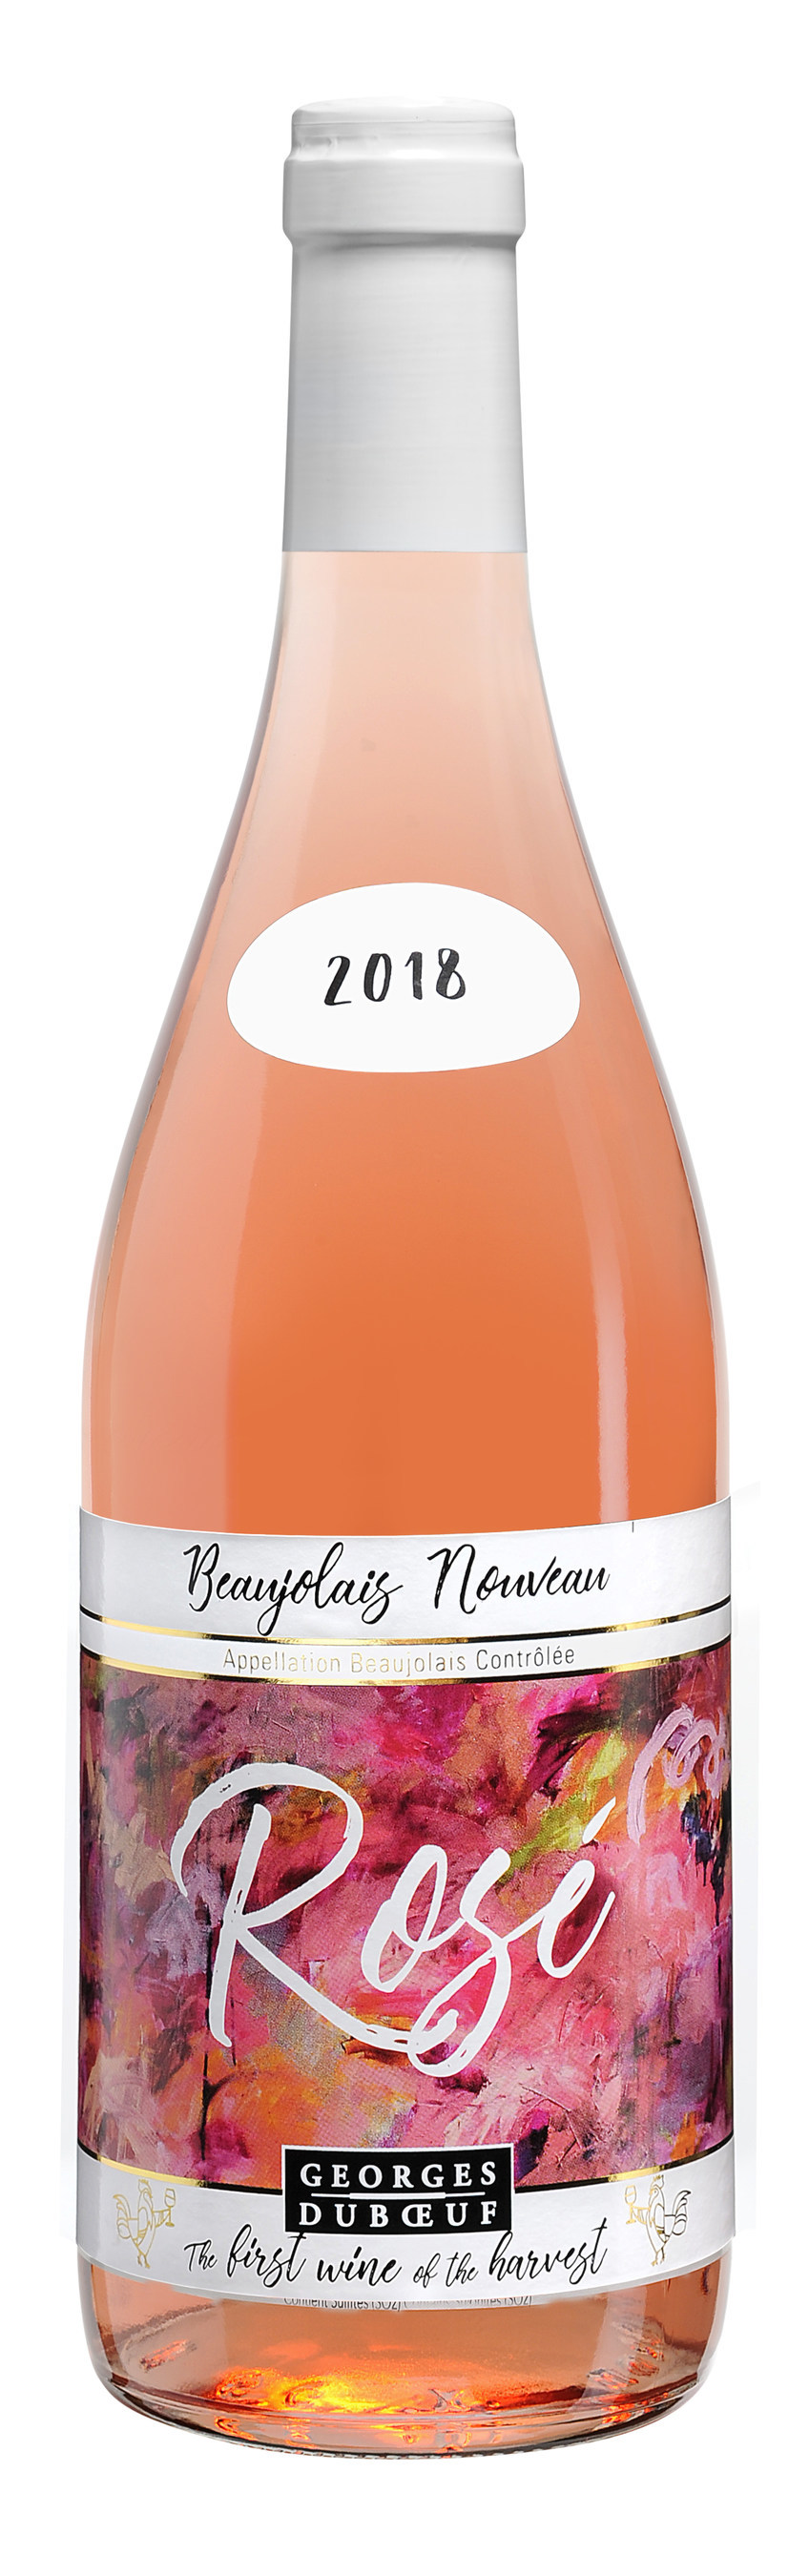 Rose On The Way -- Georges Duboeuf To Debut Beaujolais Nouveau Rose on November 15, alongside traditional Beaujolais Nouveau, just in time for holiday entertaining and gift-giving.